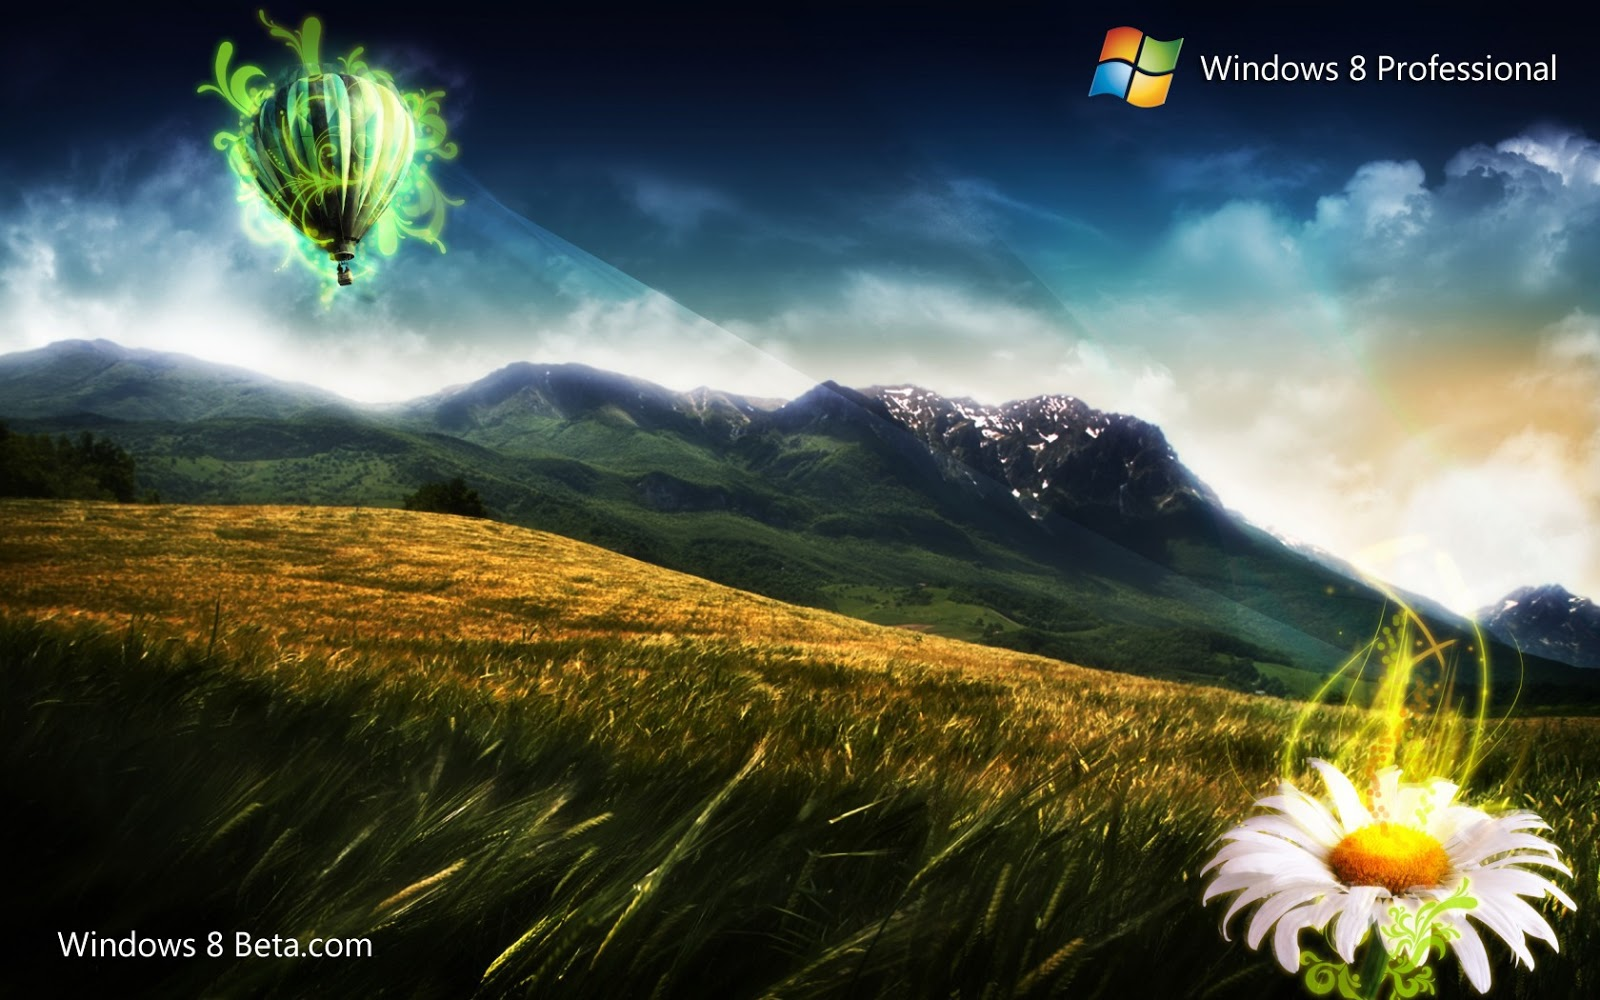 Unique Wallpaper: Super Cool Windows 8 Wallpapers HD